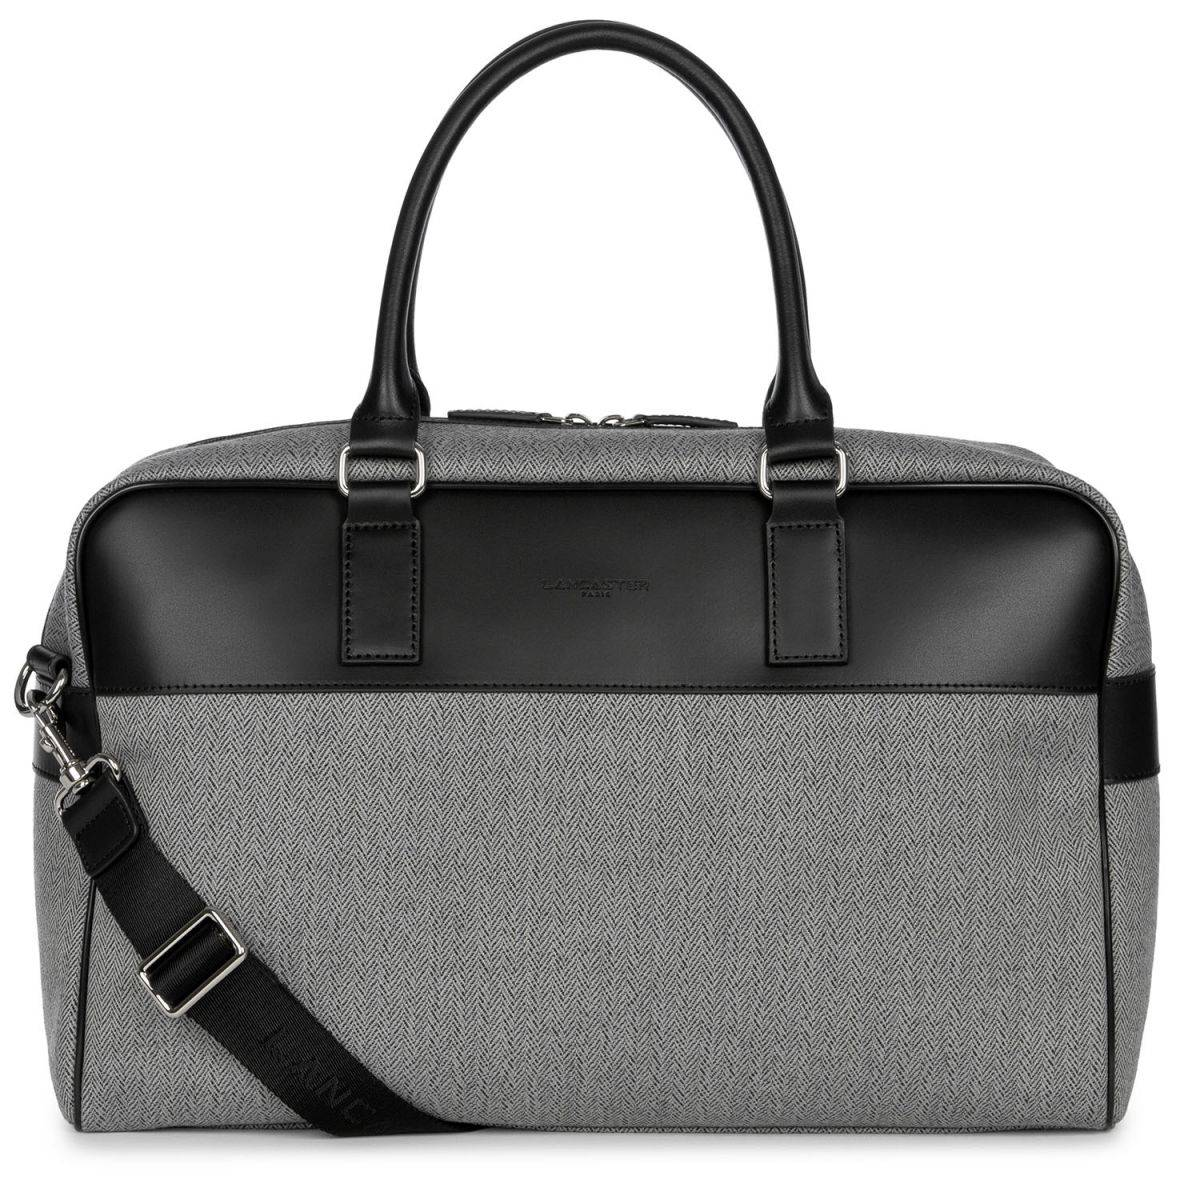 24h Besace Lancaster Dan 11 Zippée306 Fermeture Sac Homme Grand 8wvmyNnO0